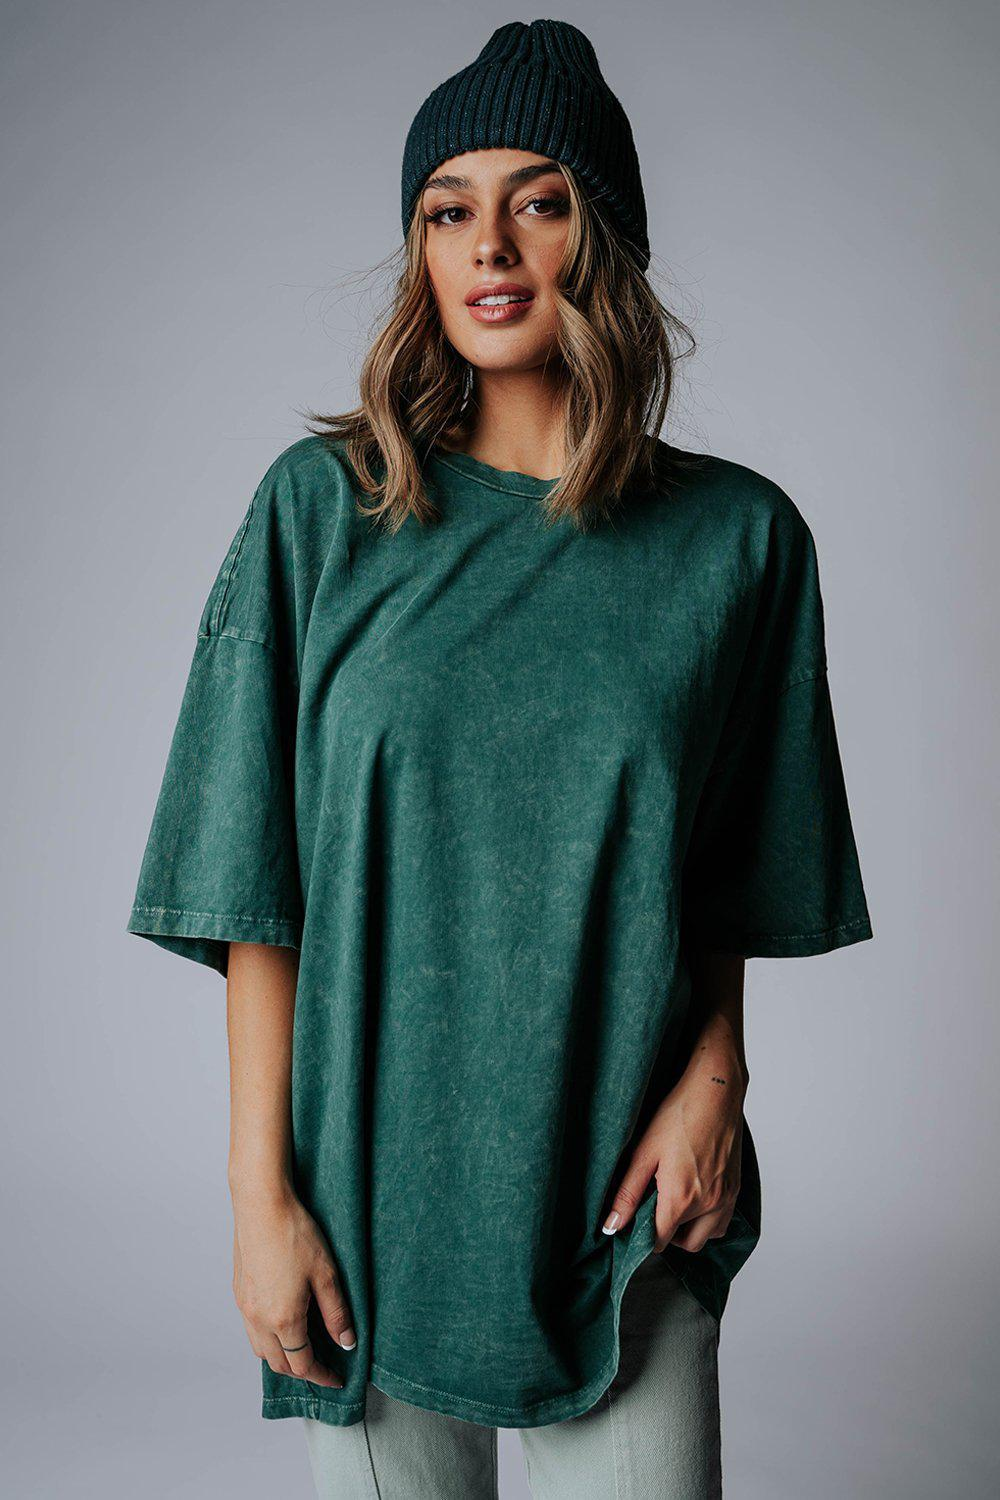 best_seller, WFH Oversized Tee in Emerald - FINAL SALE, Top, women's clothing, dresses, skirts, coats, jackets, shoes, boots, tops, tee shirts, jeans, free people, levi's, rollas, jumpsuits, bottoms, tops, sweaters, pullovers, pants, shorts, sweats,.